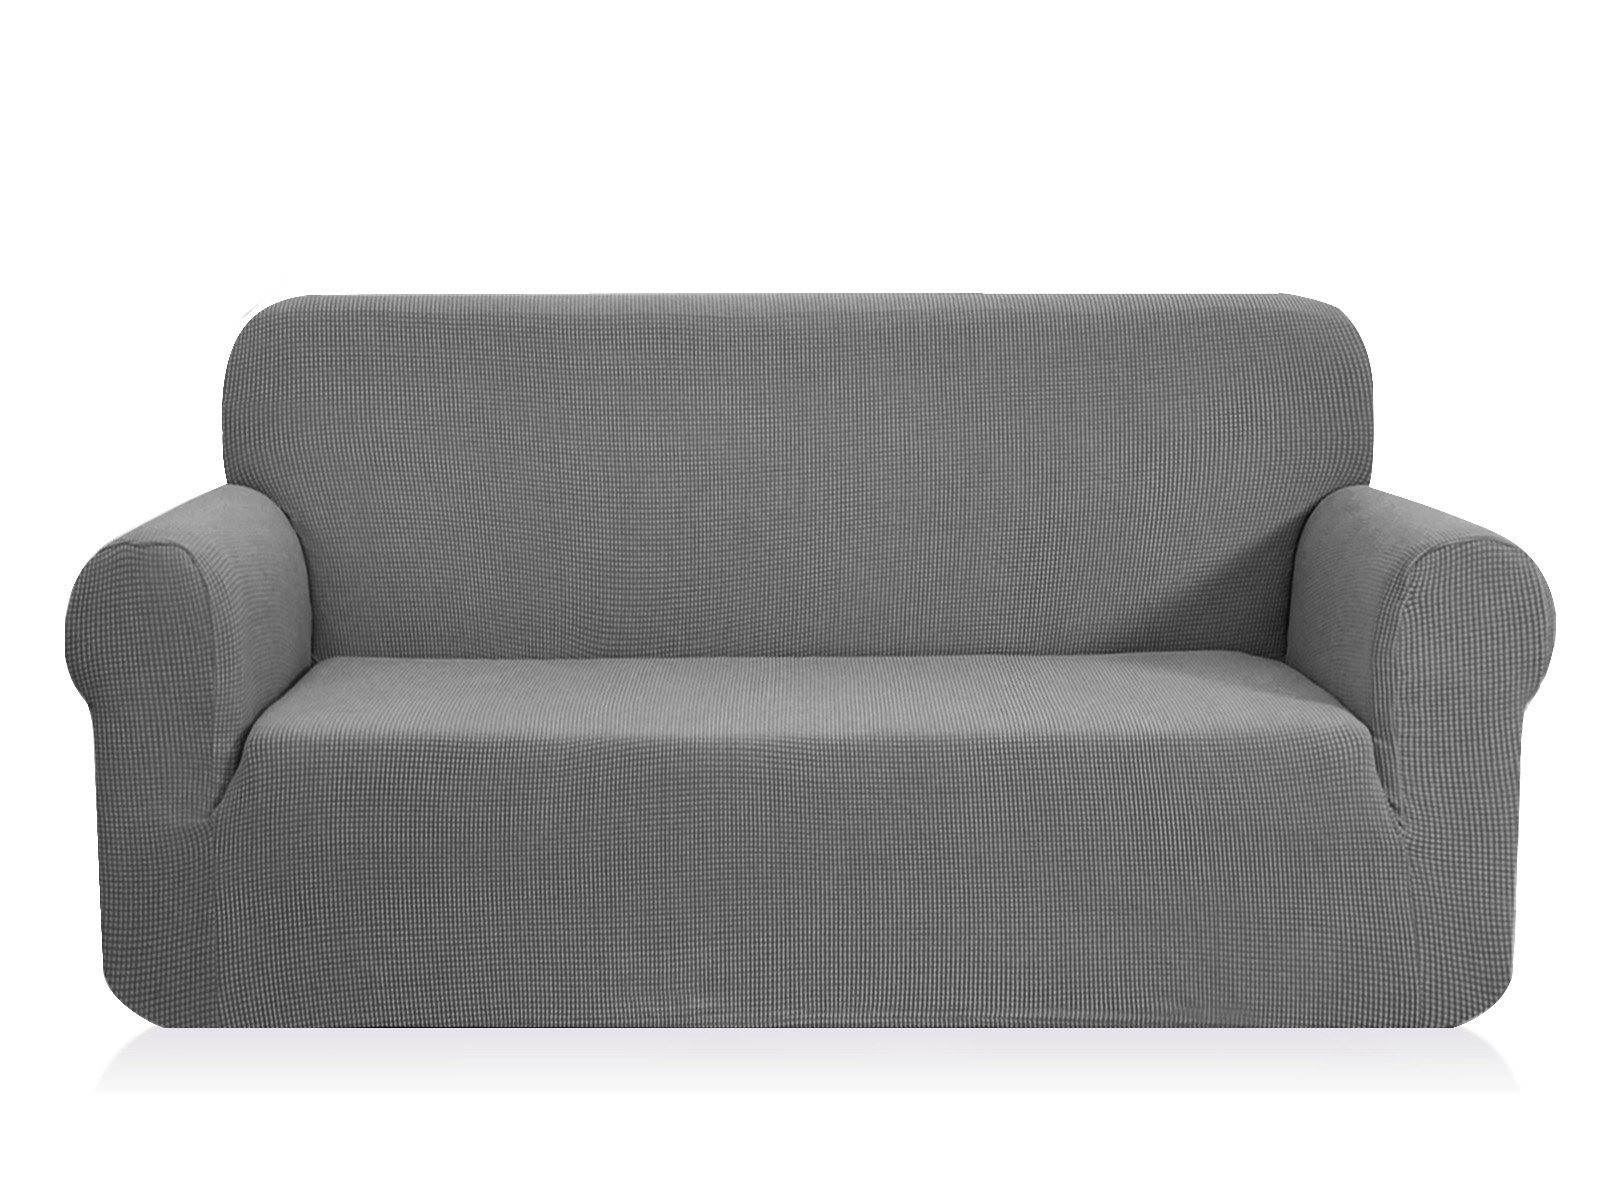 CHUN YI Jacquard Sofa Covers 1-Piece Polyester Spandex Fabric Slipcover (Loveseat, Light Gray)